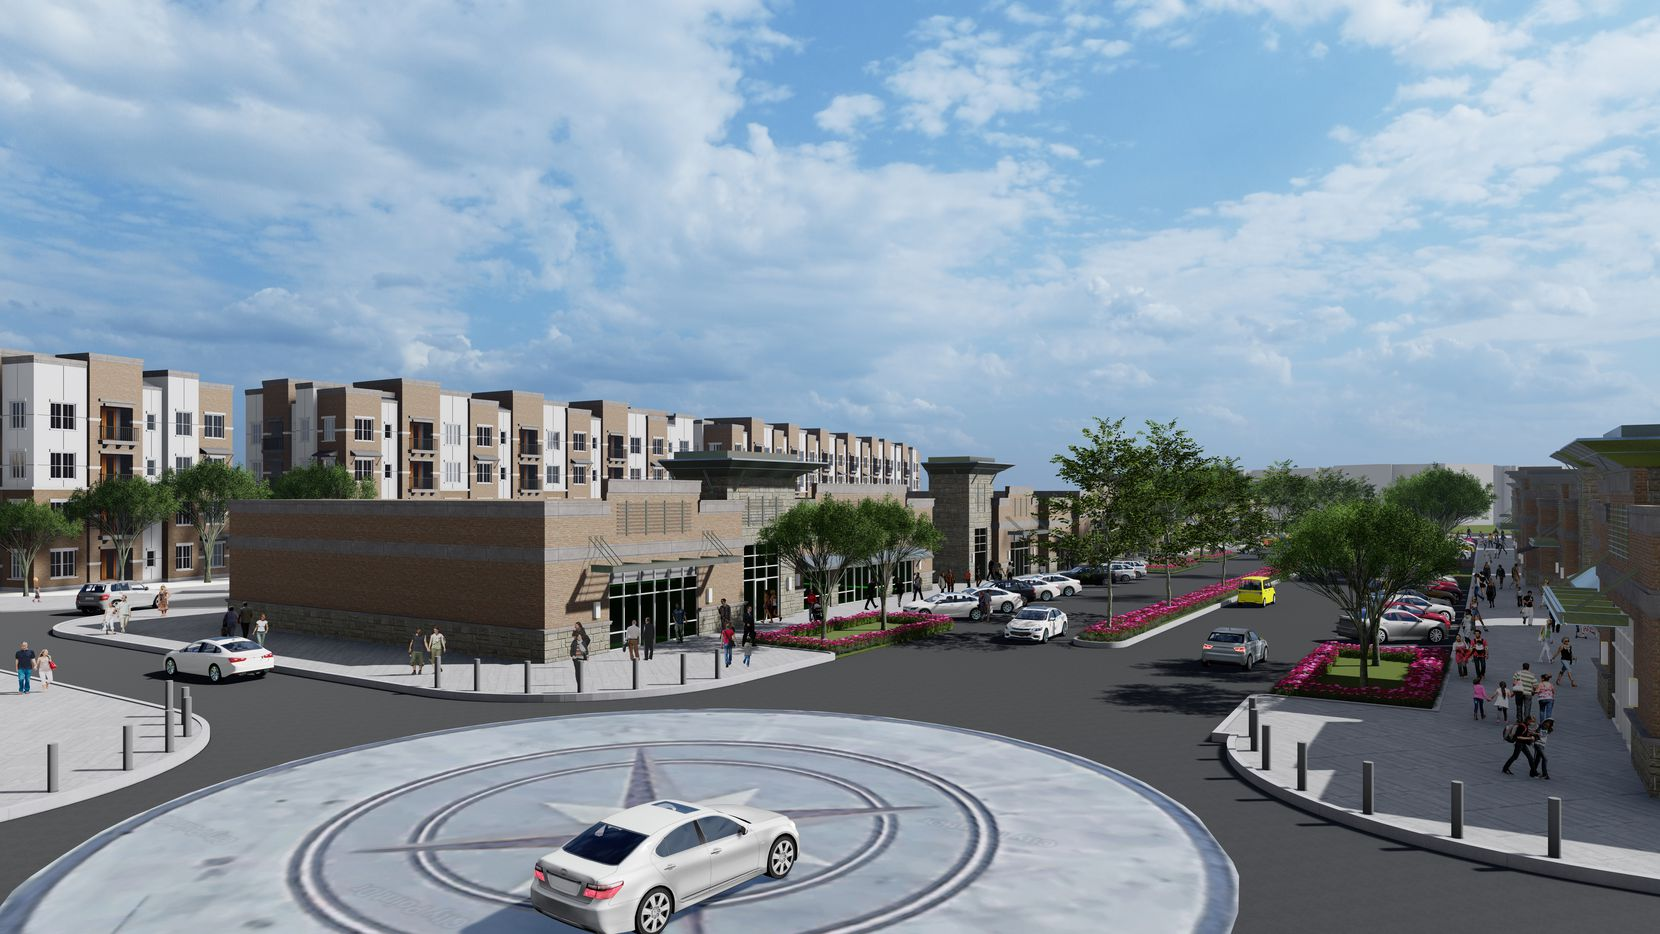 Centurion American's City Point project 8 acres of multifamily development, 60,000 square feet of commercial space, a hotel site, an amenity center, a trail system and green space.